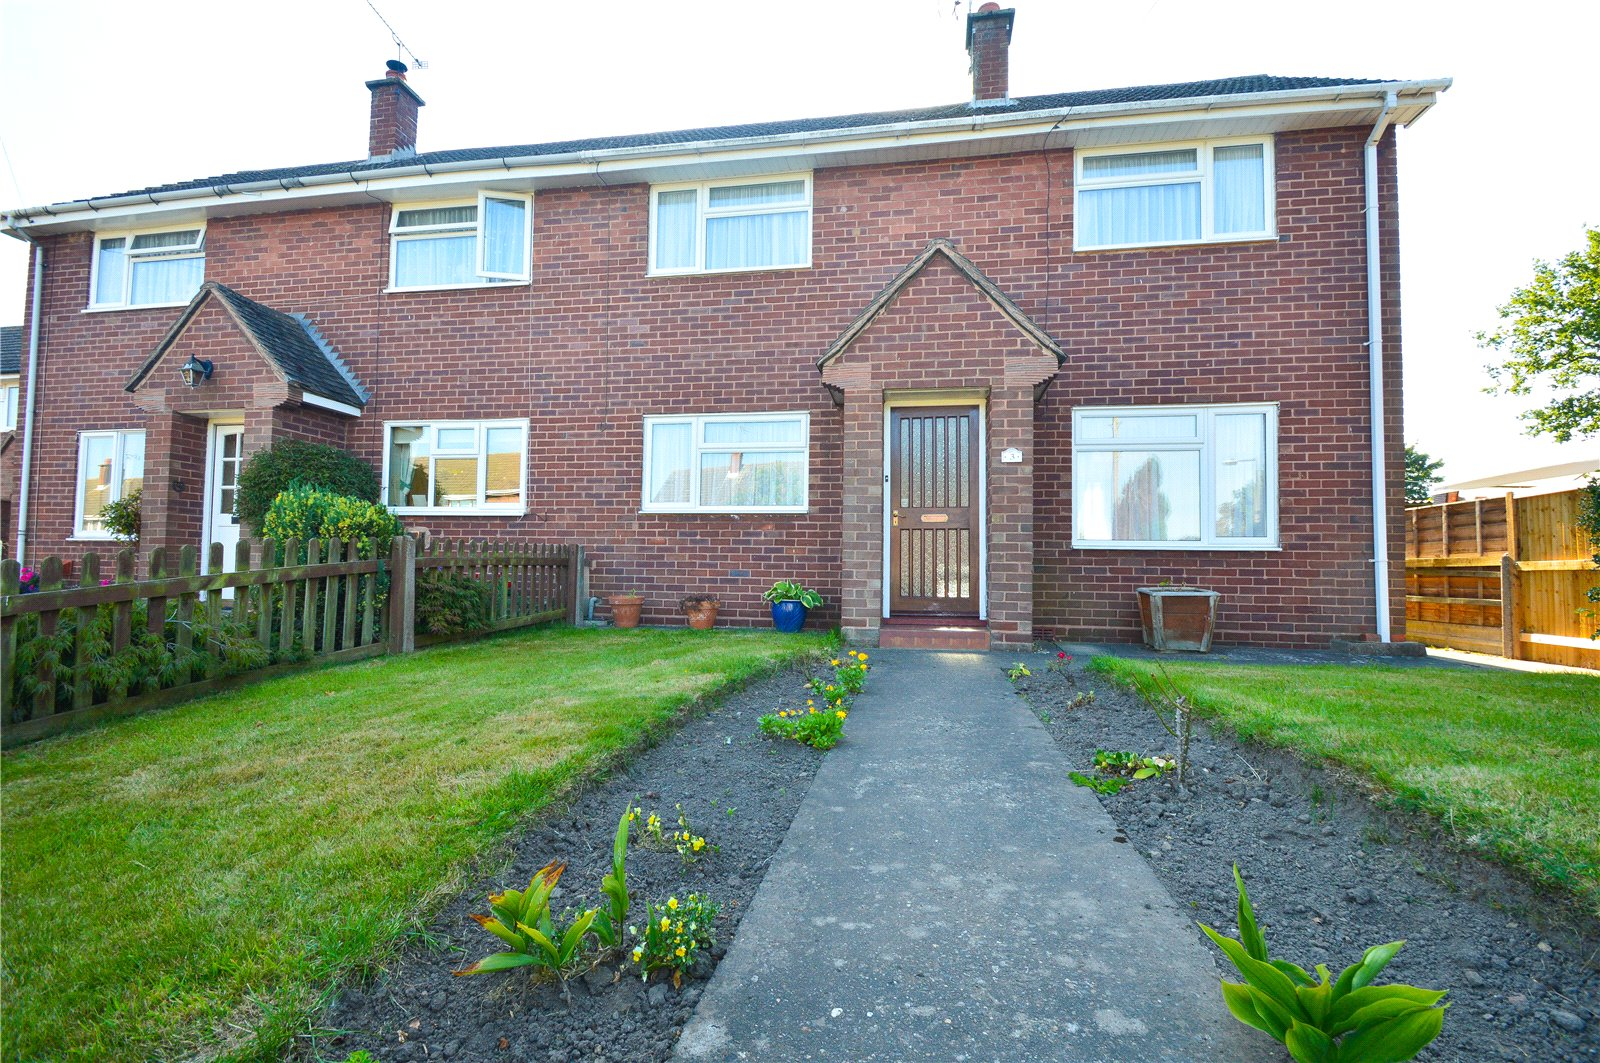 3 Bedrooms Semi Detached House for sale in 3 College Close, Cleobury Mortimer, Kidderminster, Shropshire, DY14